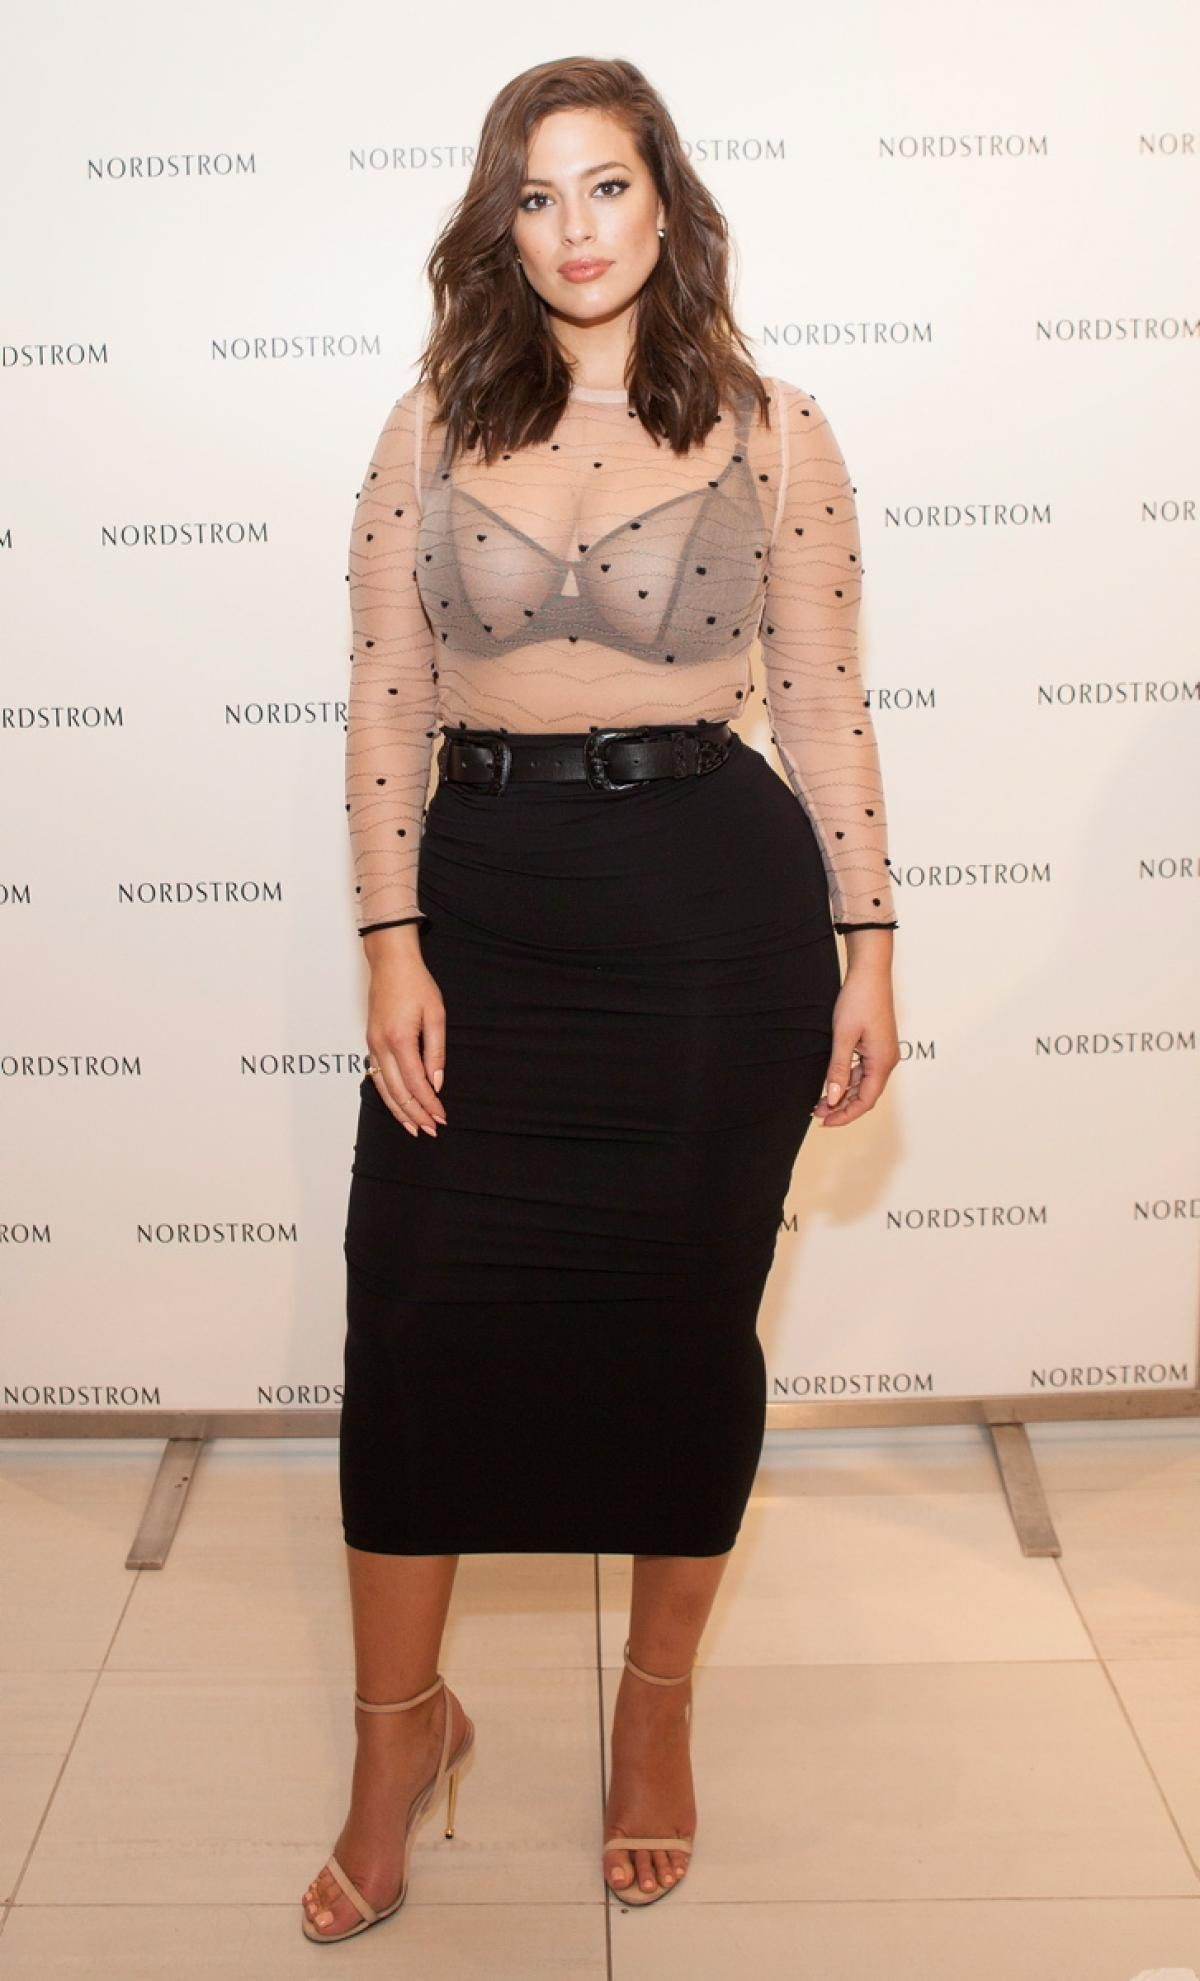 Marvelous suggestions for beautiful ashley graham, American Beauty Star